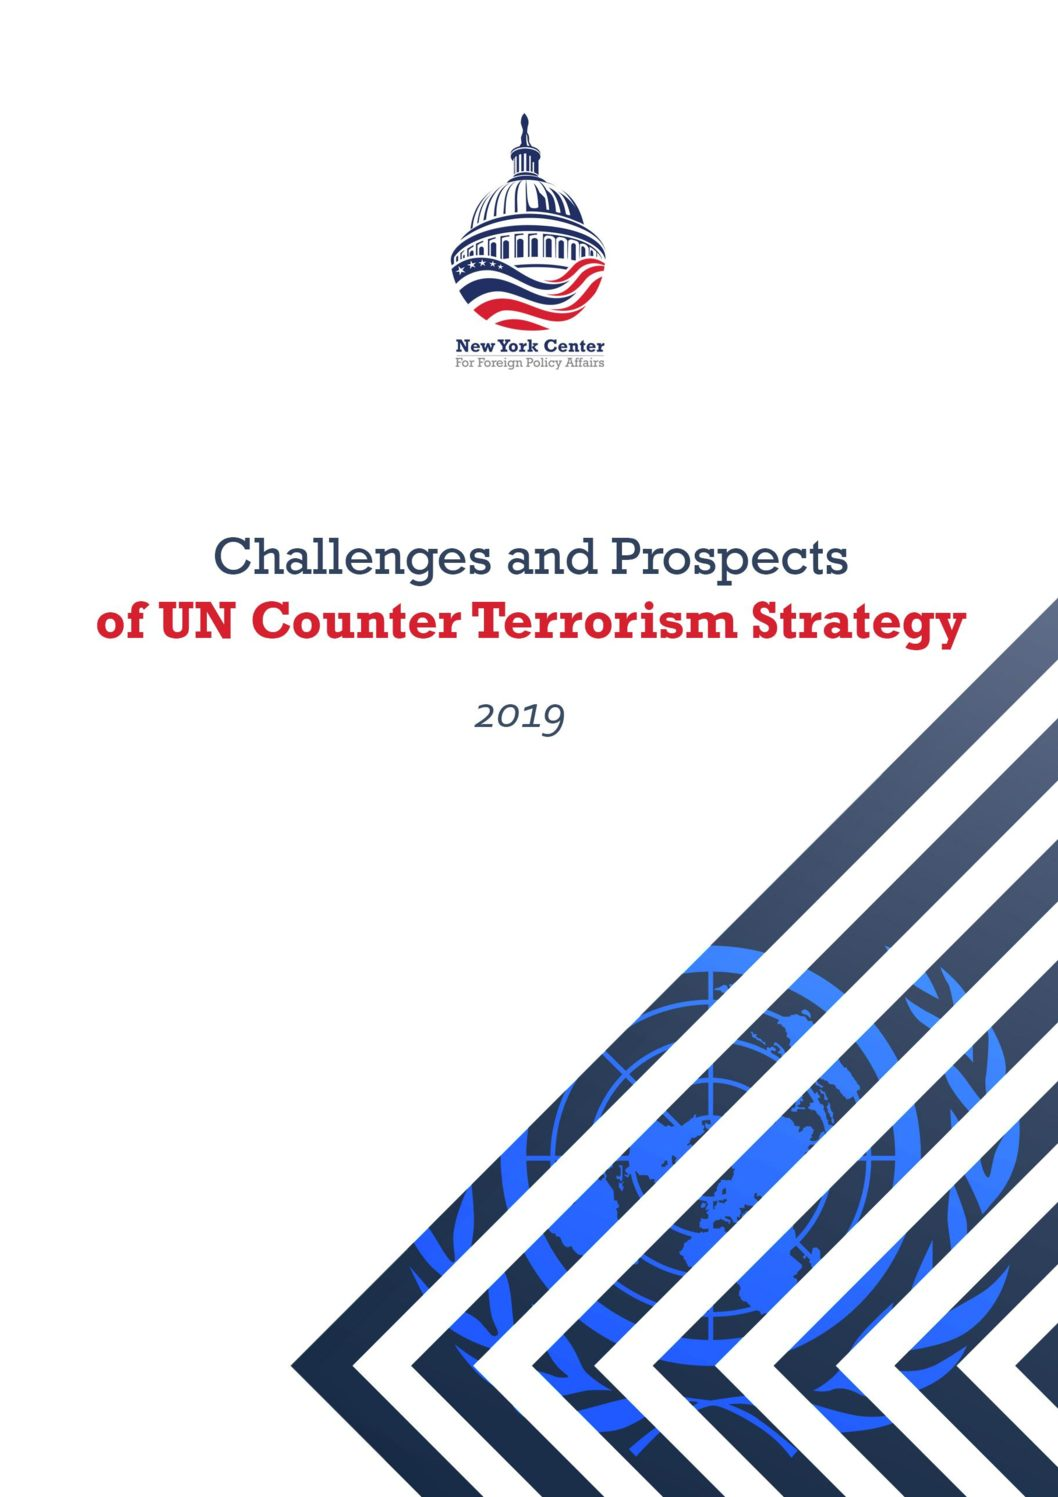 Challenges and Prospects of UN Counter Terrorism Strategy